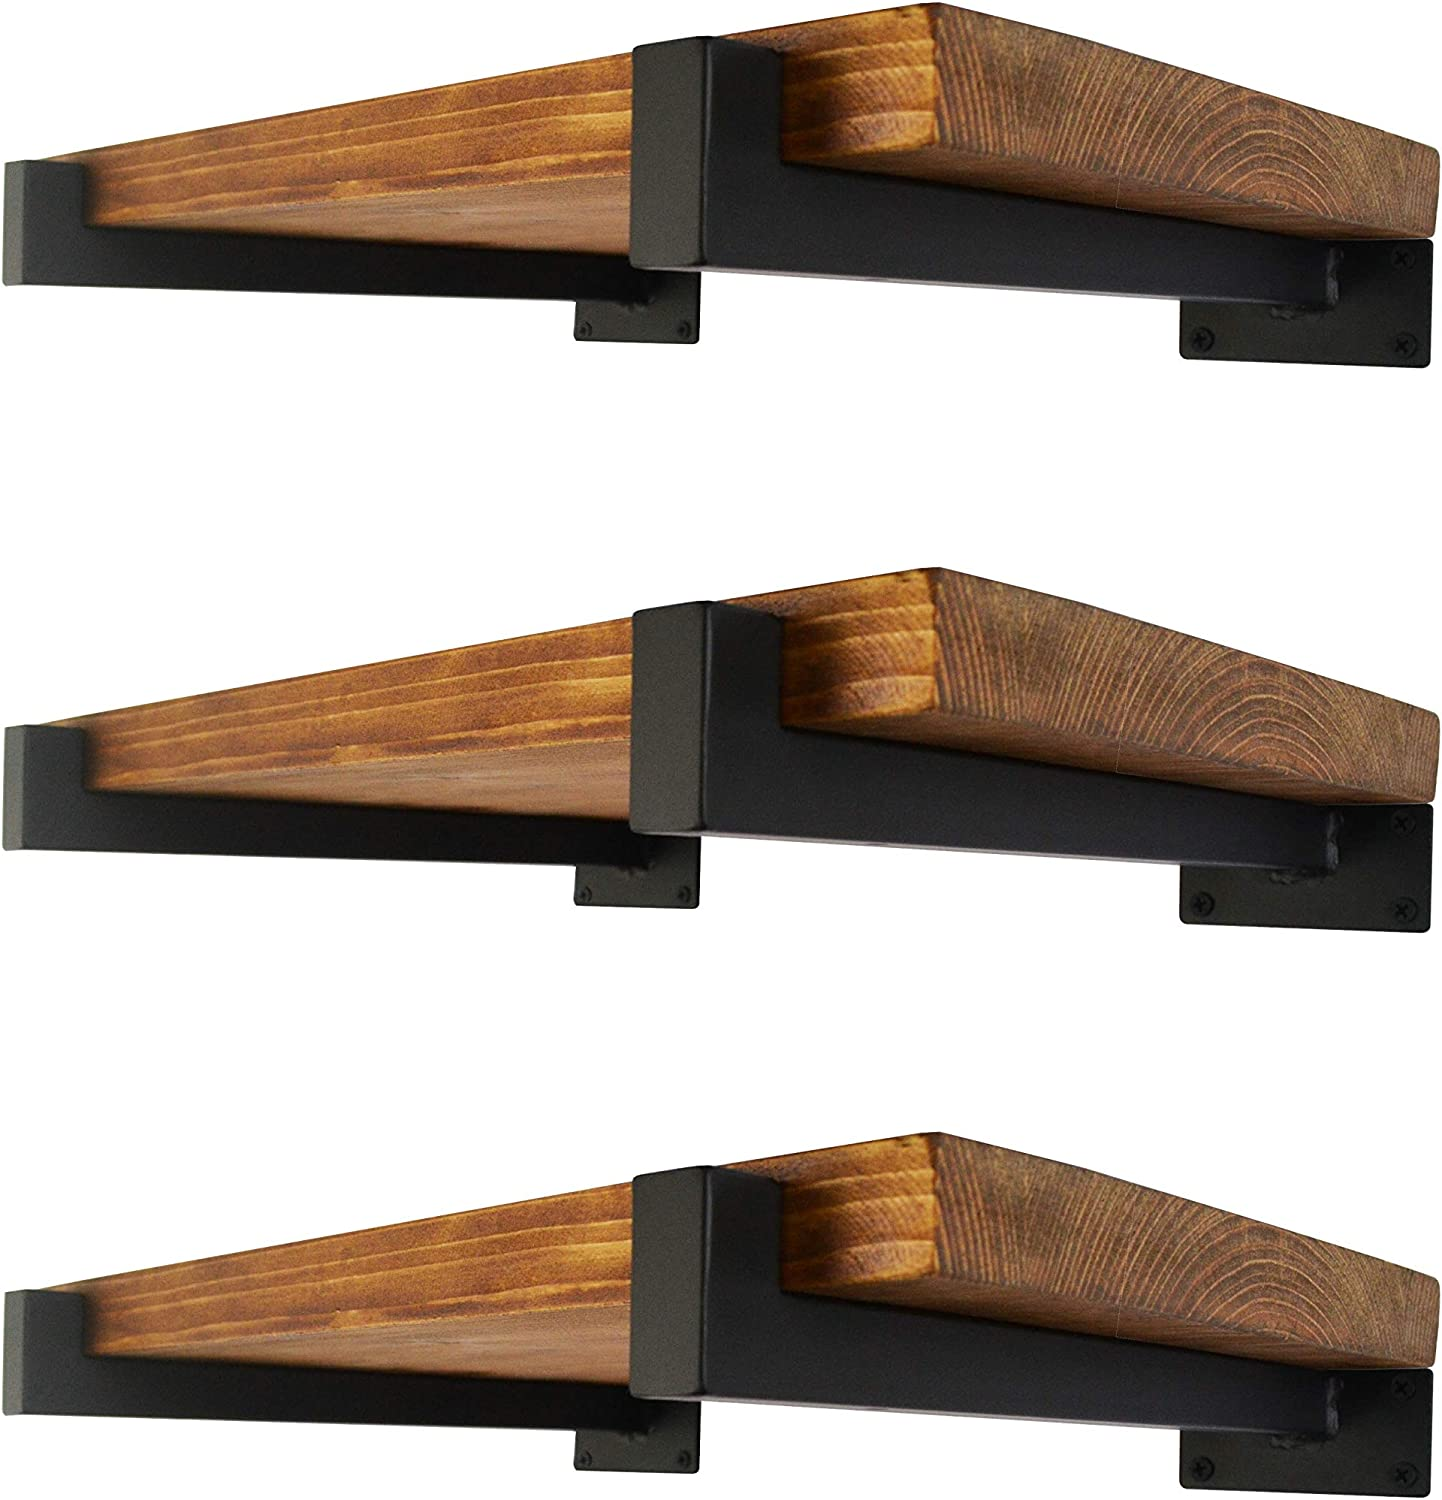 6 Pcs Floating Shelf Brackets Tucson Sales of SALE items from new works Mall Inch Heavy Mounted Duty Wall Ind